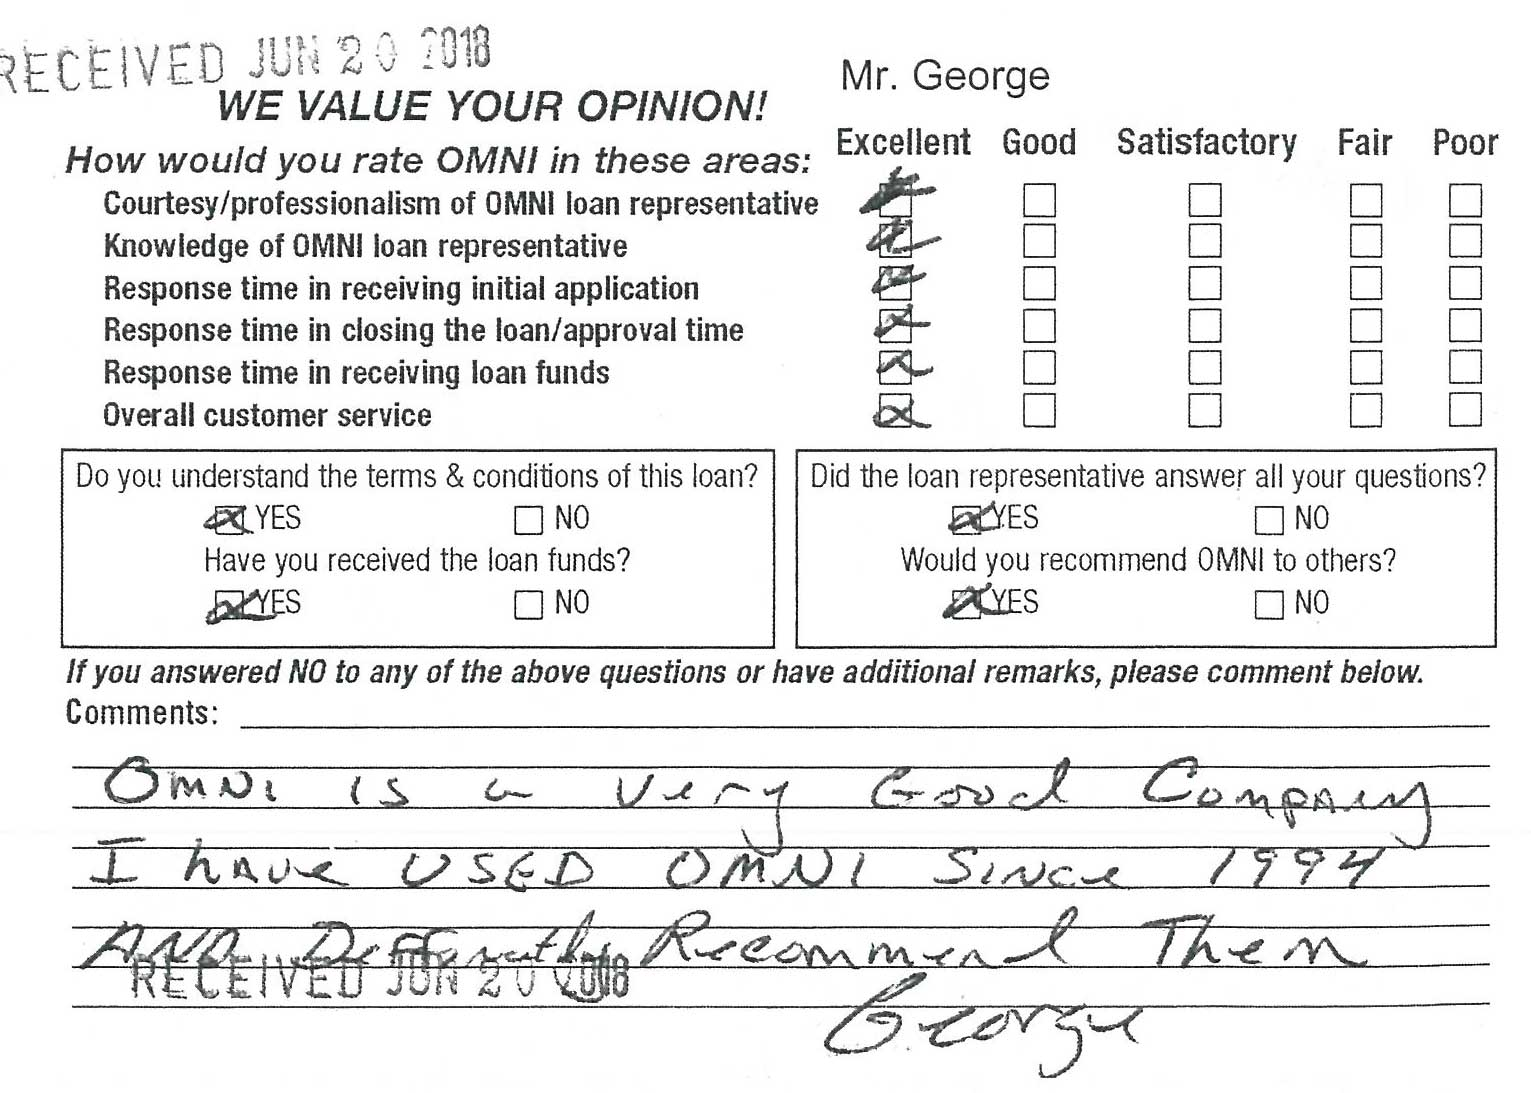 Comment card received for the Omni office in Columbus, GA on June 20th 2018